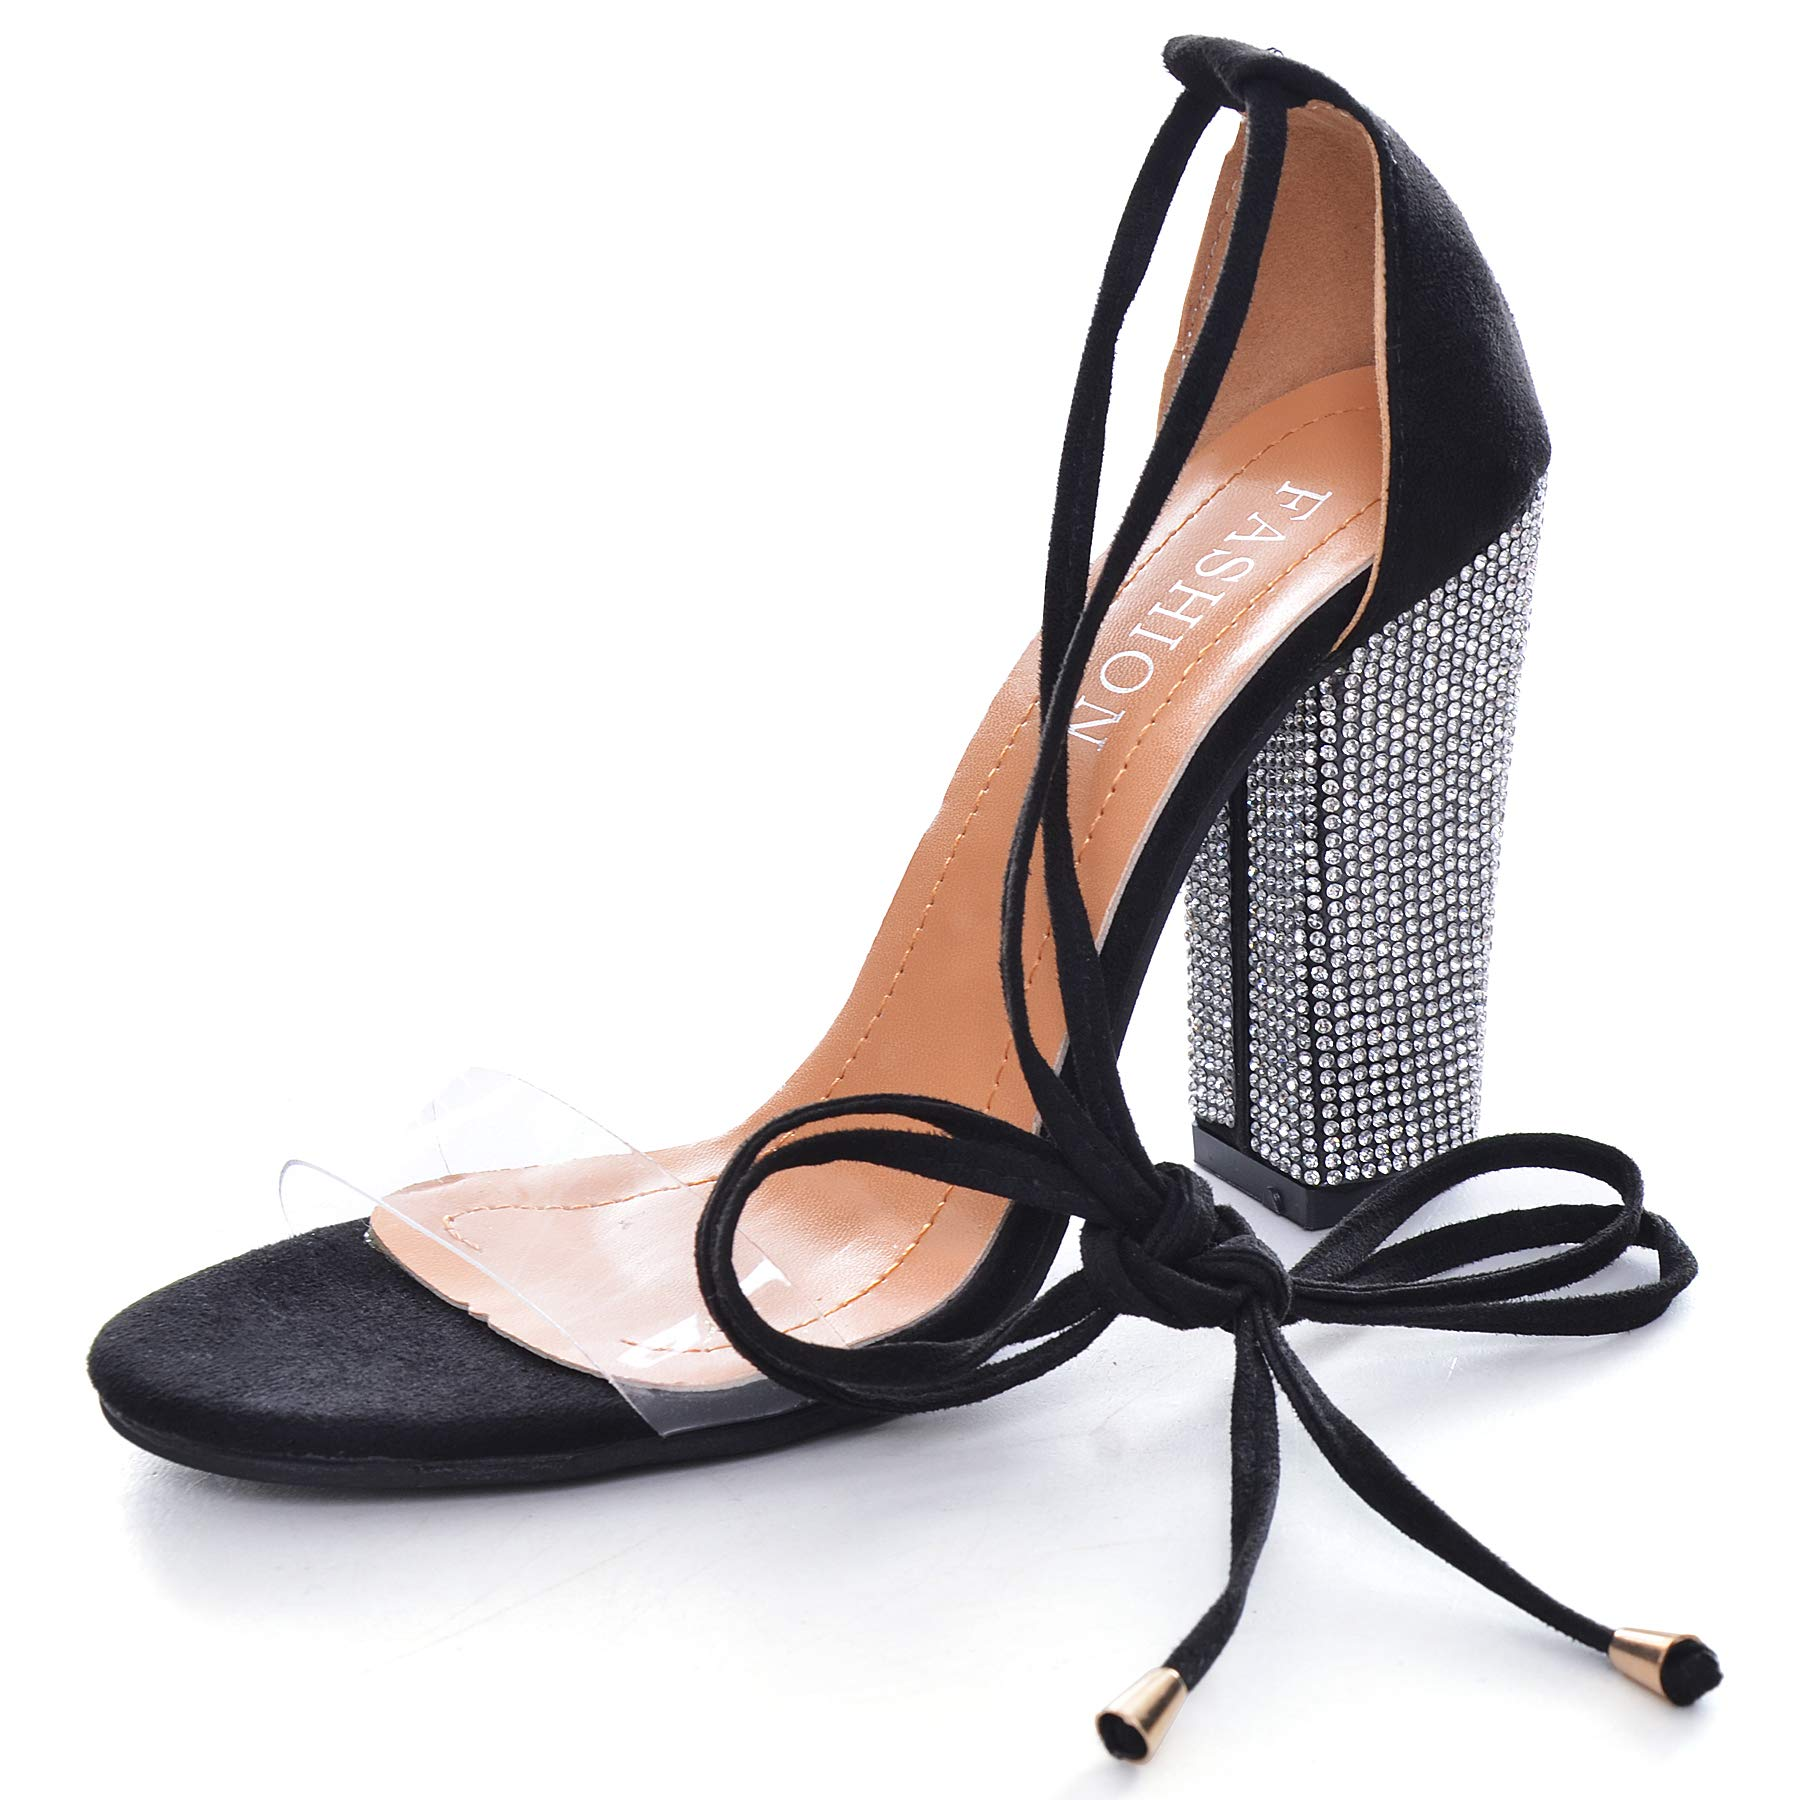 Women's Rhinestone Heels Gladiator Lace up High Heels Sandals with Ankle Strappy Clear Chunky Heels Open Toe Covered Stiletto Dress Party Pumps Shoes Black 8.5